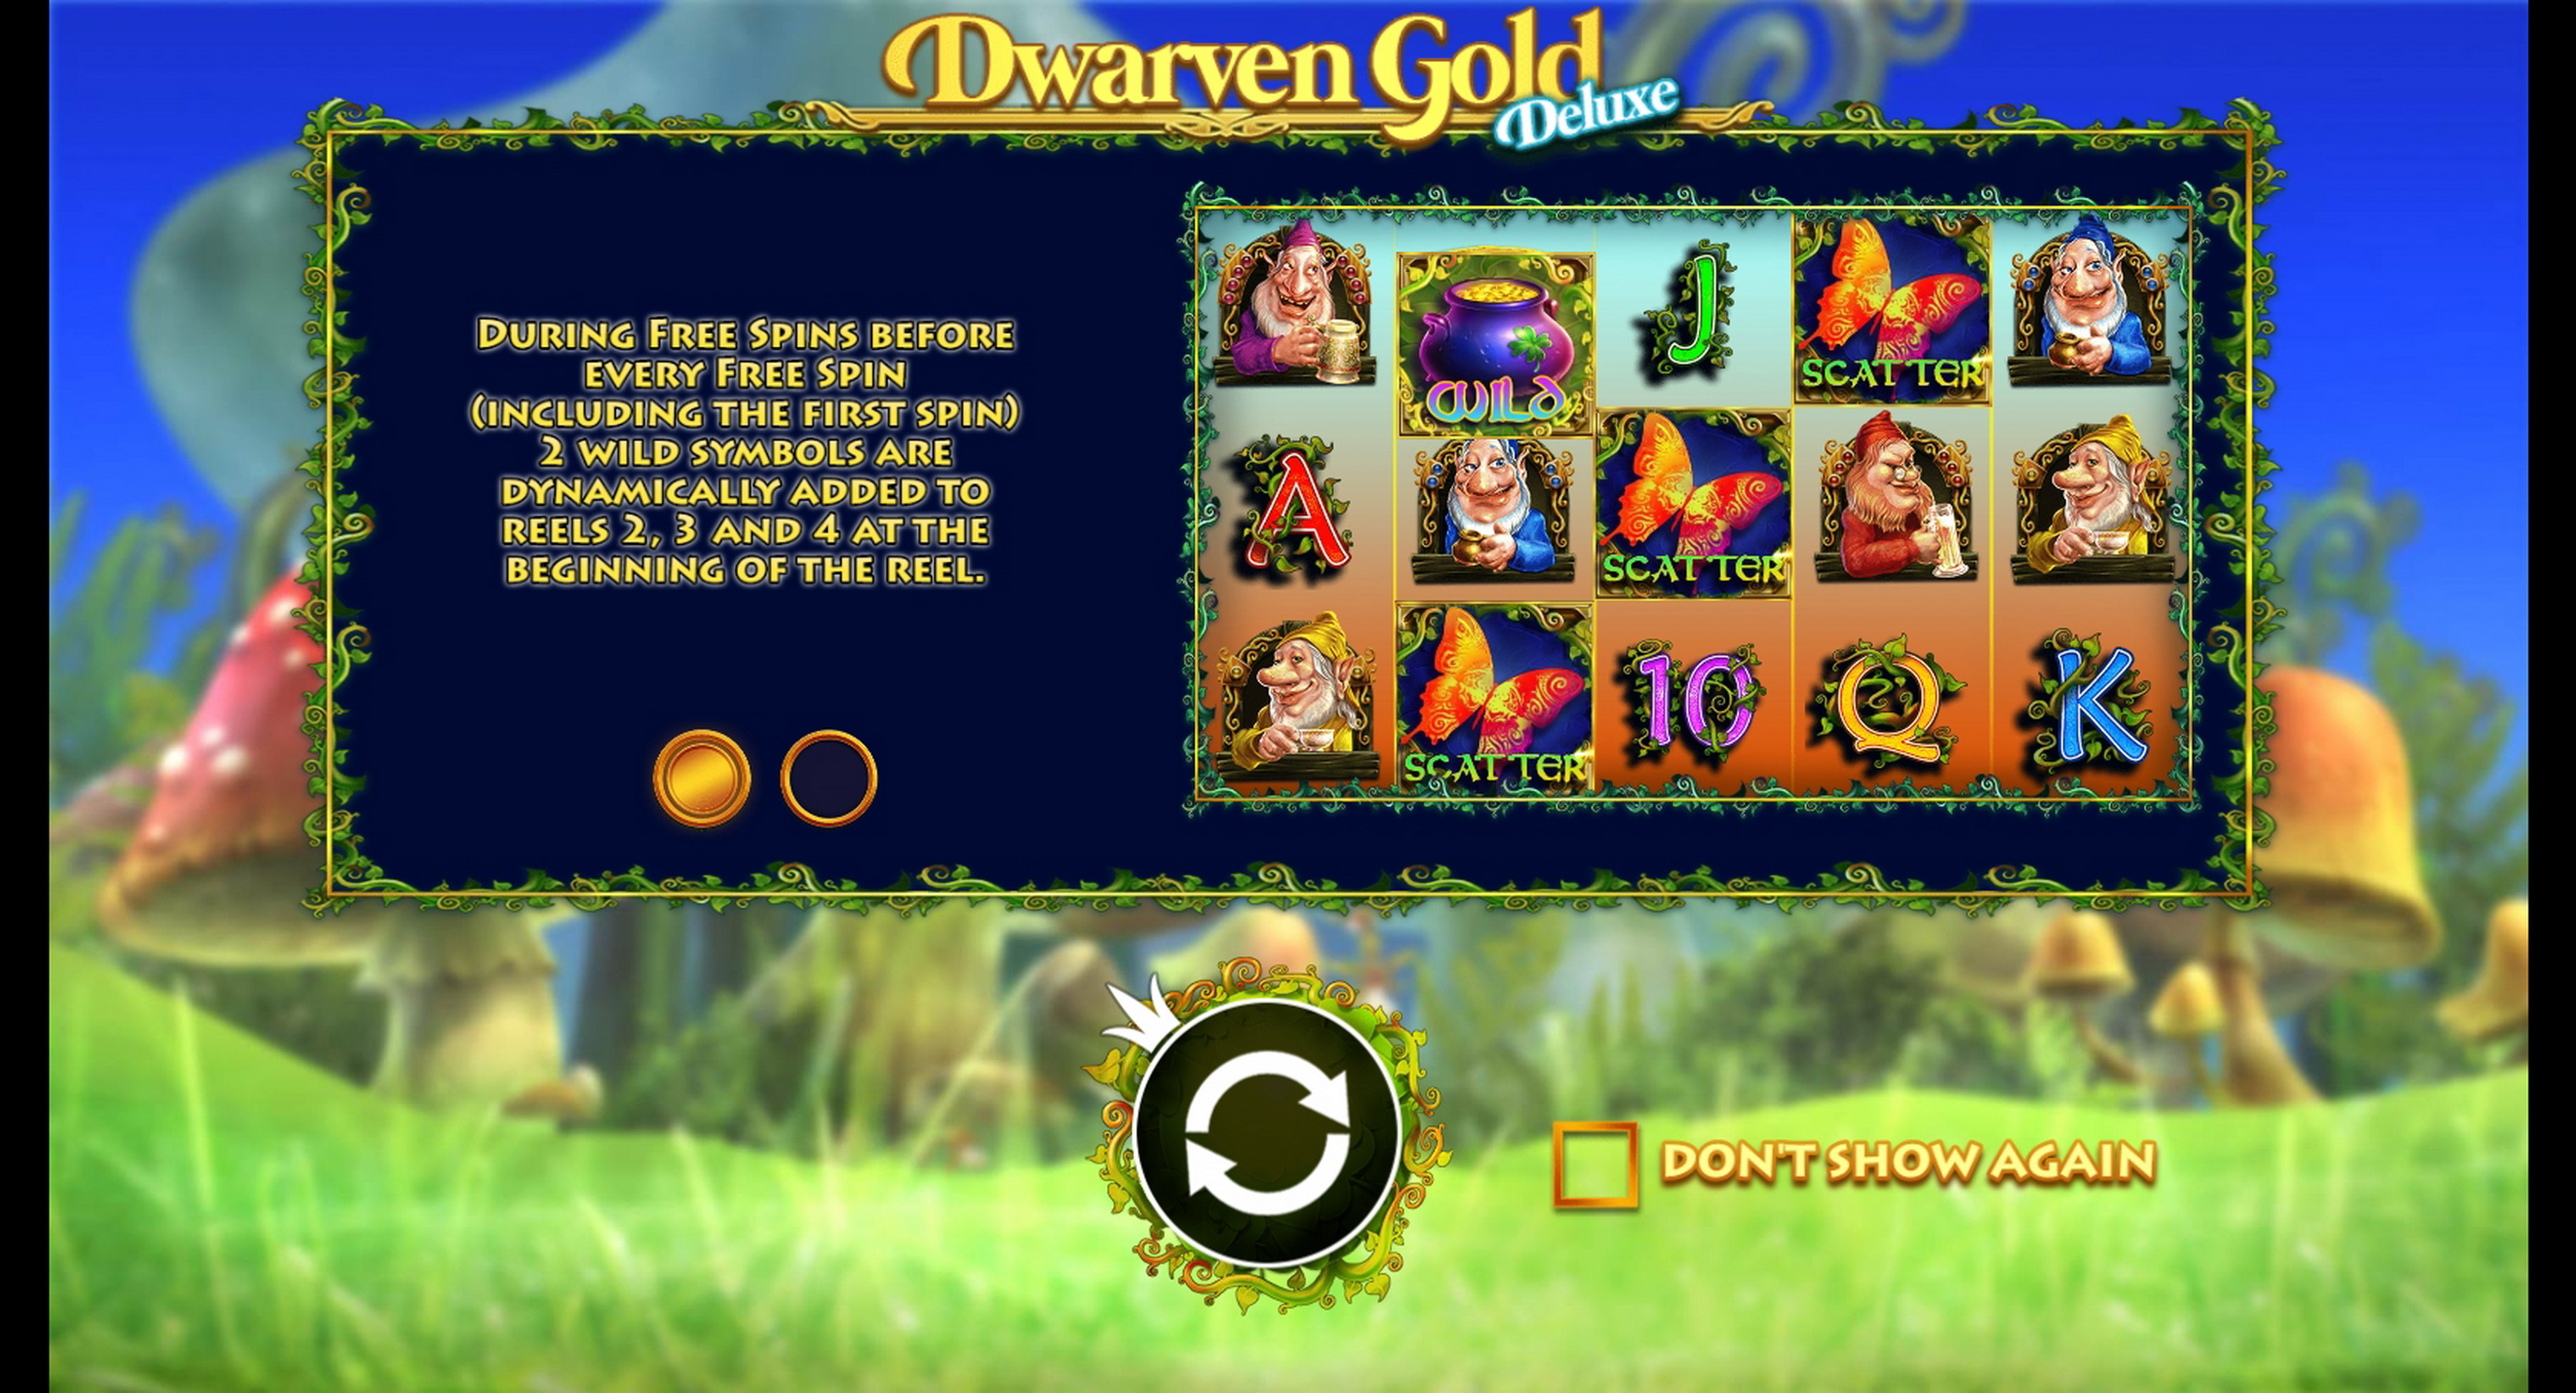 Play Dwarven Gold Deluxe Free Casino Slot Game by Pragmatic Play